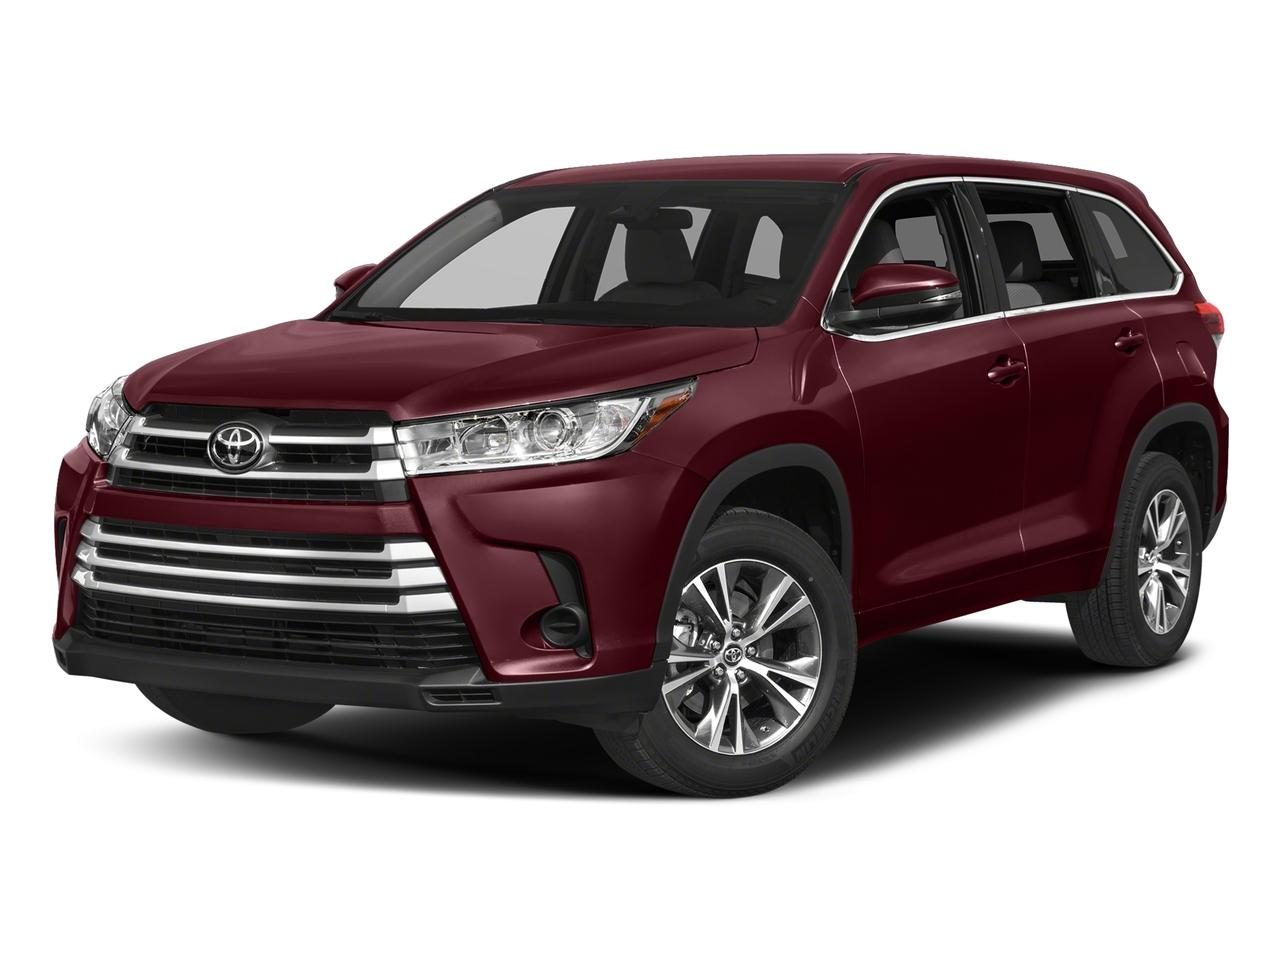 2018 Toyota Highlander Vehicle Photo in Wasilla, AK 99654